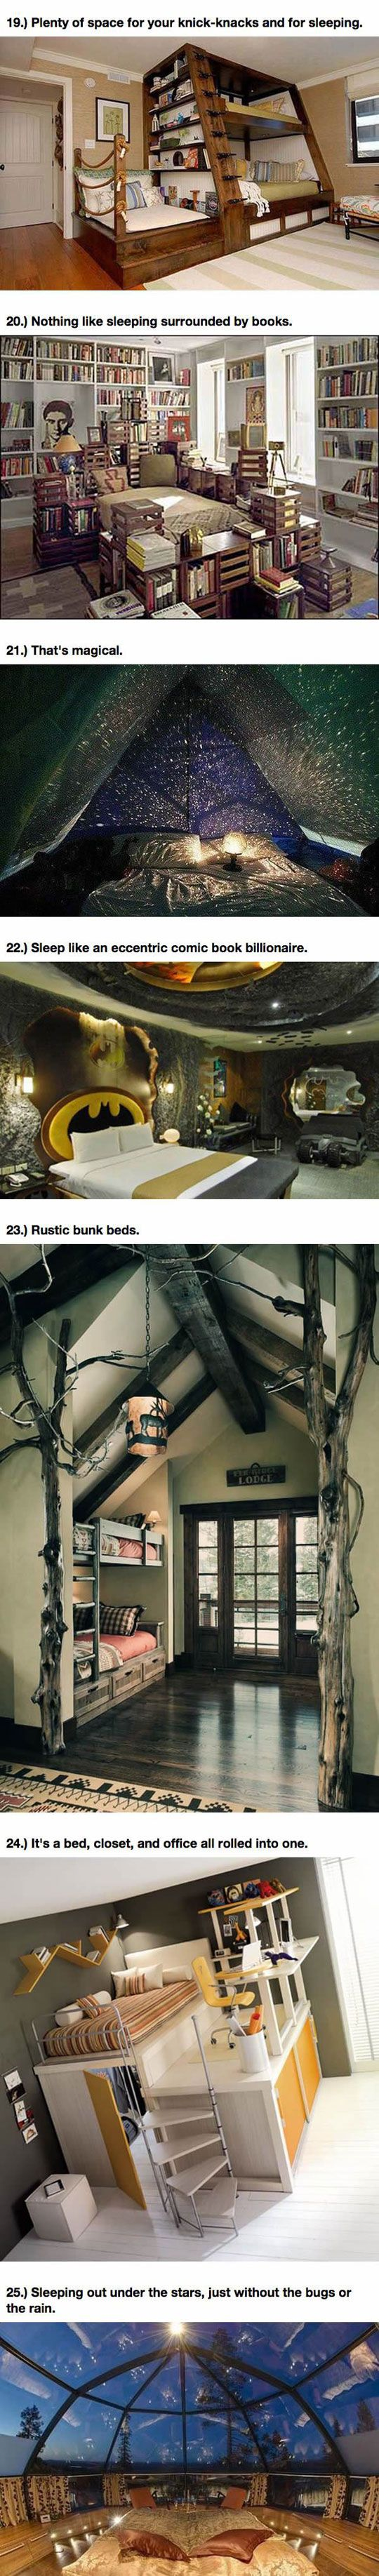 Best bed designs ever consider for br